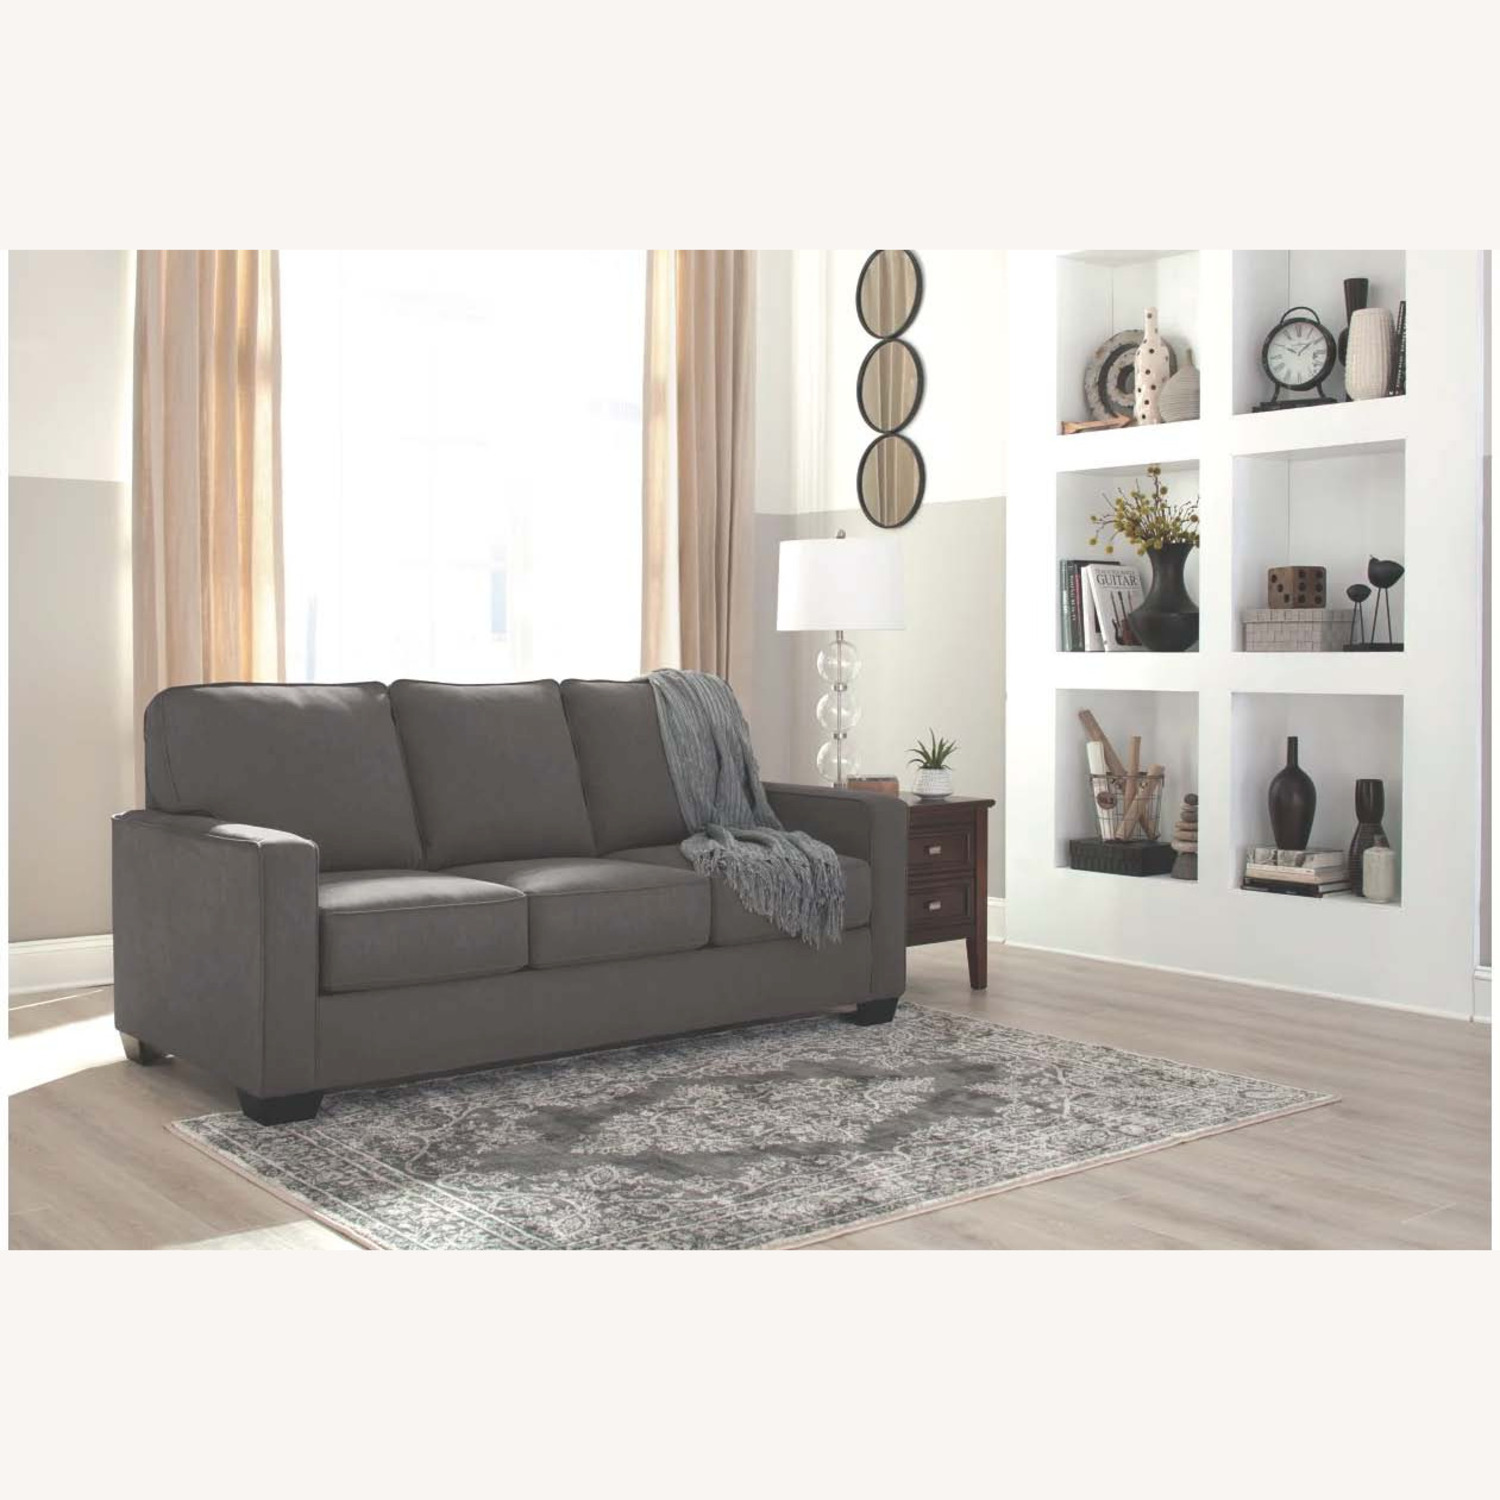 Ashley Furniture ZEB Sleeper Sofa - image-18